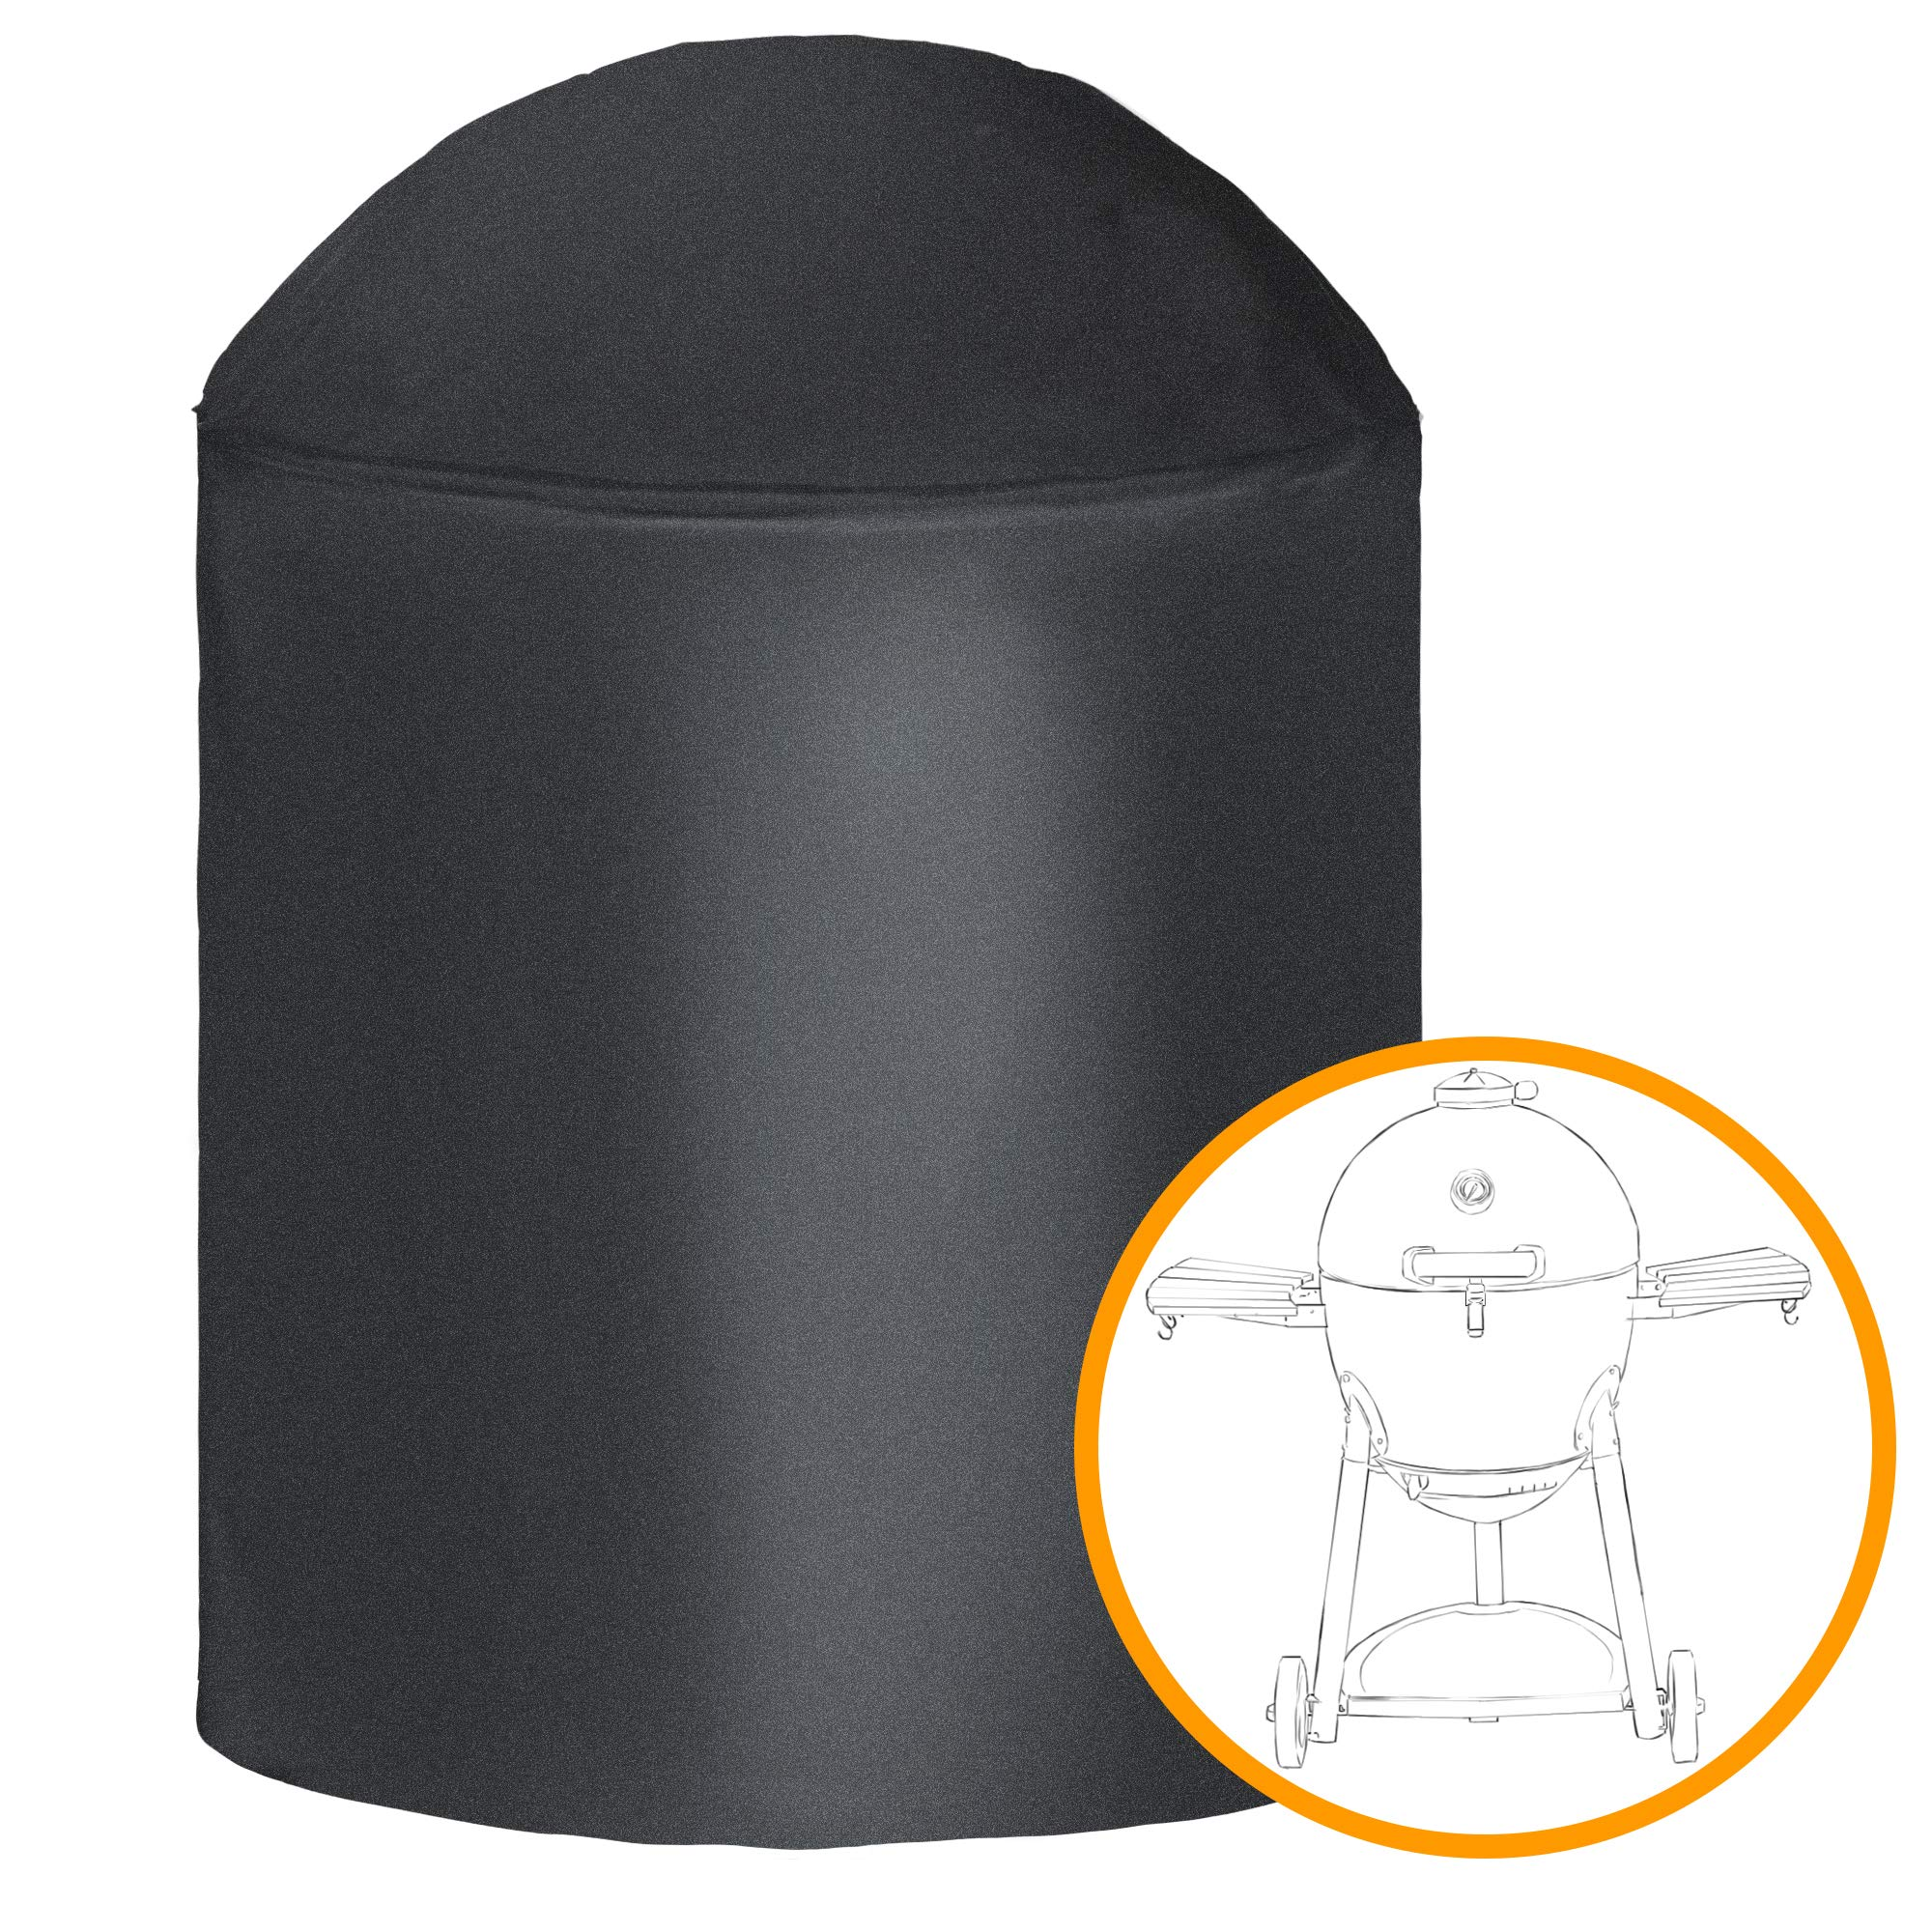 i COVER Round Grill Cover-39(Dia) x41(Tall) Water Proof Heavy Duty Outdoor Canvas BBQ Grill Cover Dome Smoker Cover Fits George Foreman Gfo3320 Gfo240 or Similar Size Grills by i COVER